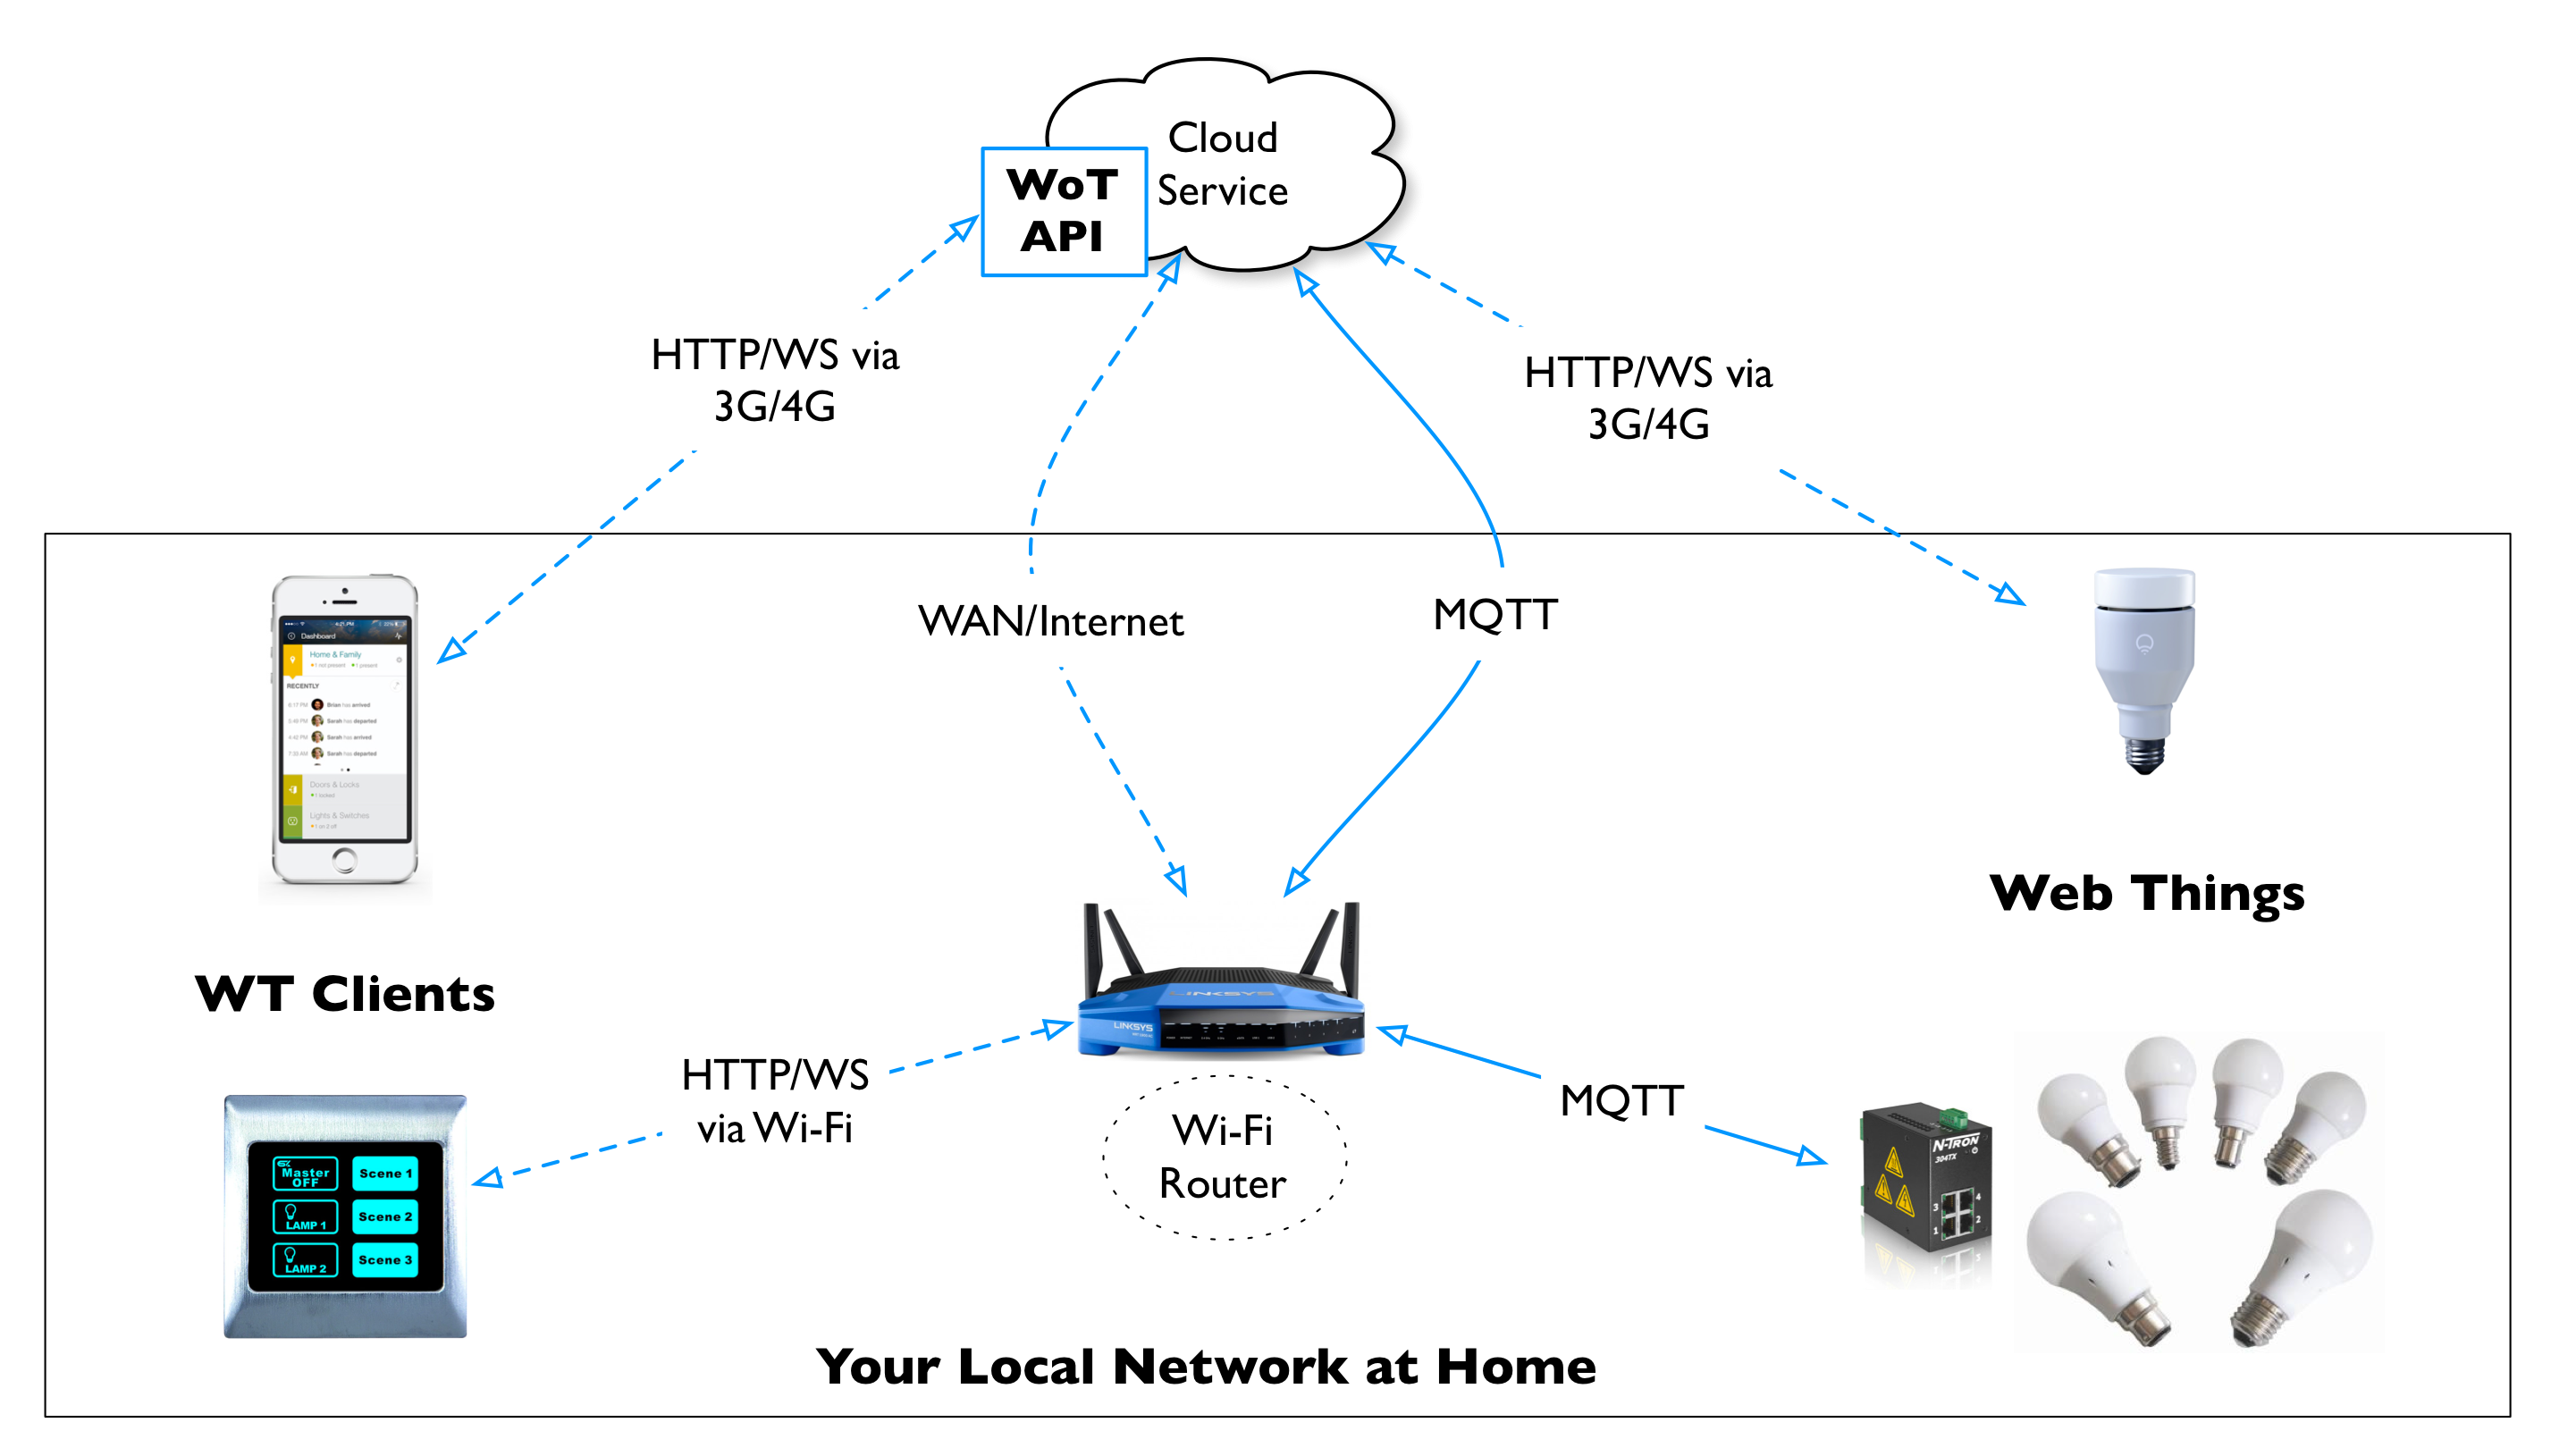 a cloud service may expose the web api of a web thing for clients to connect